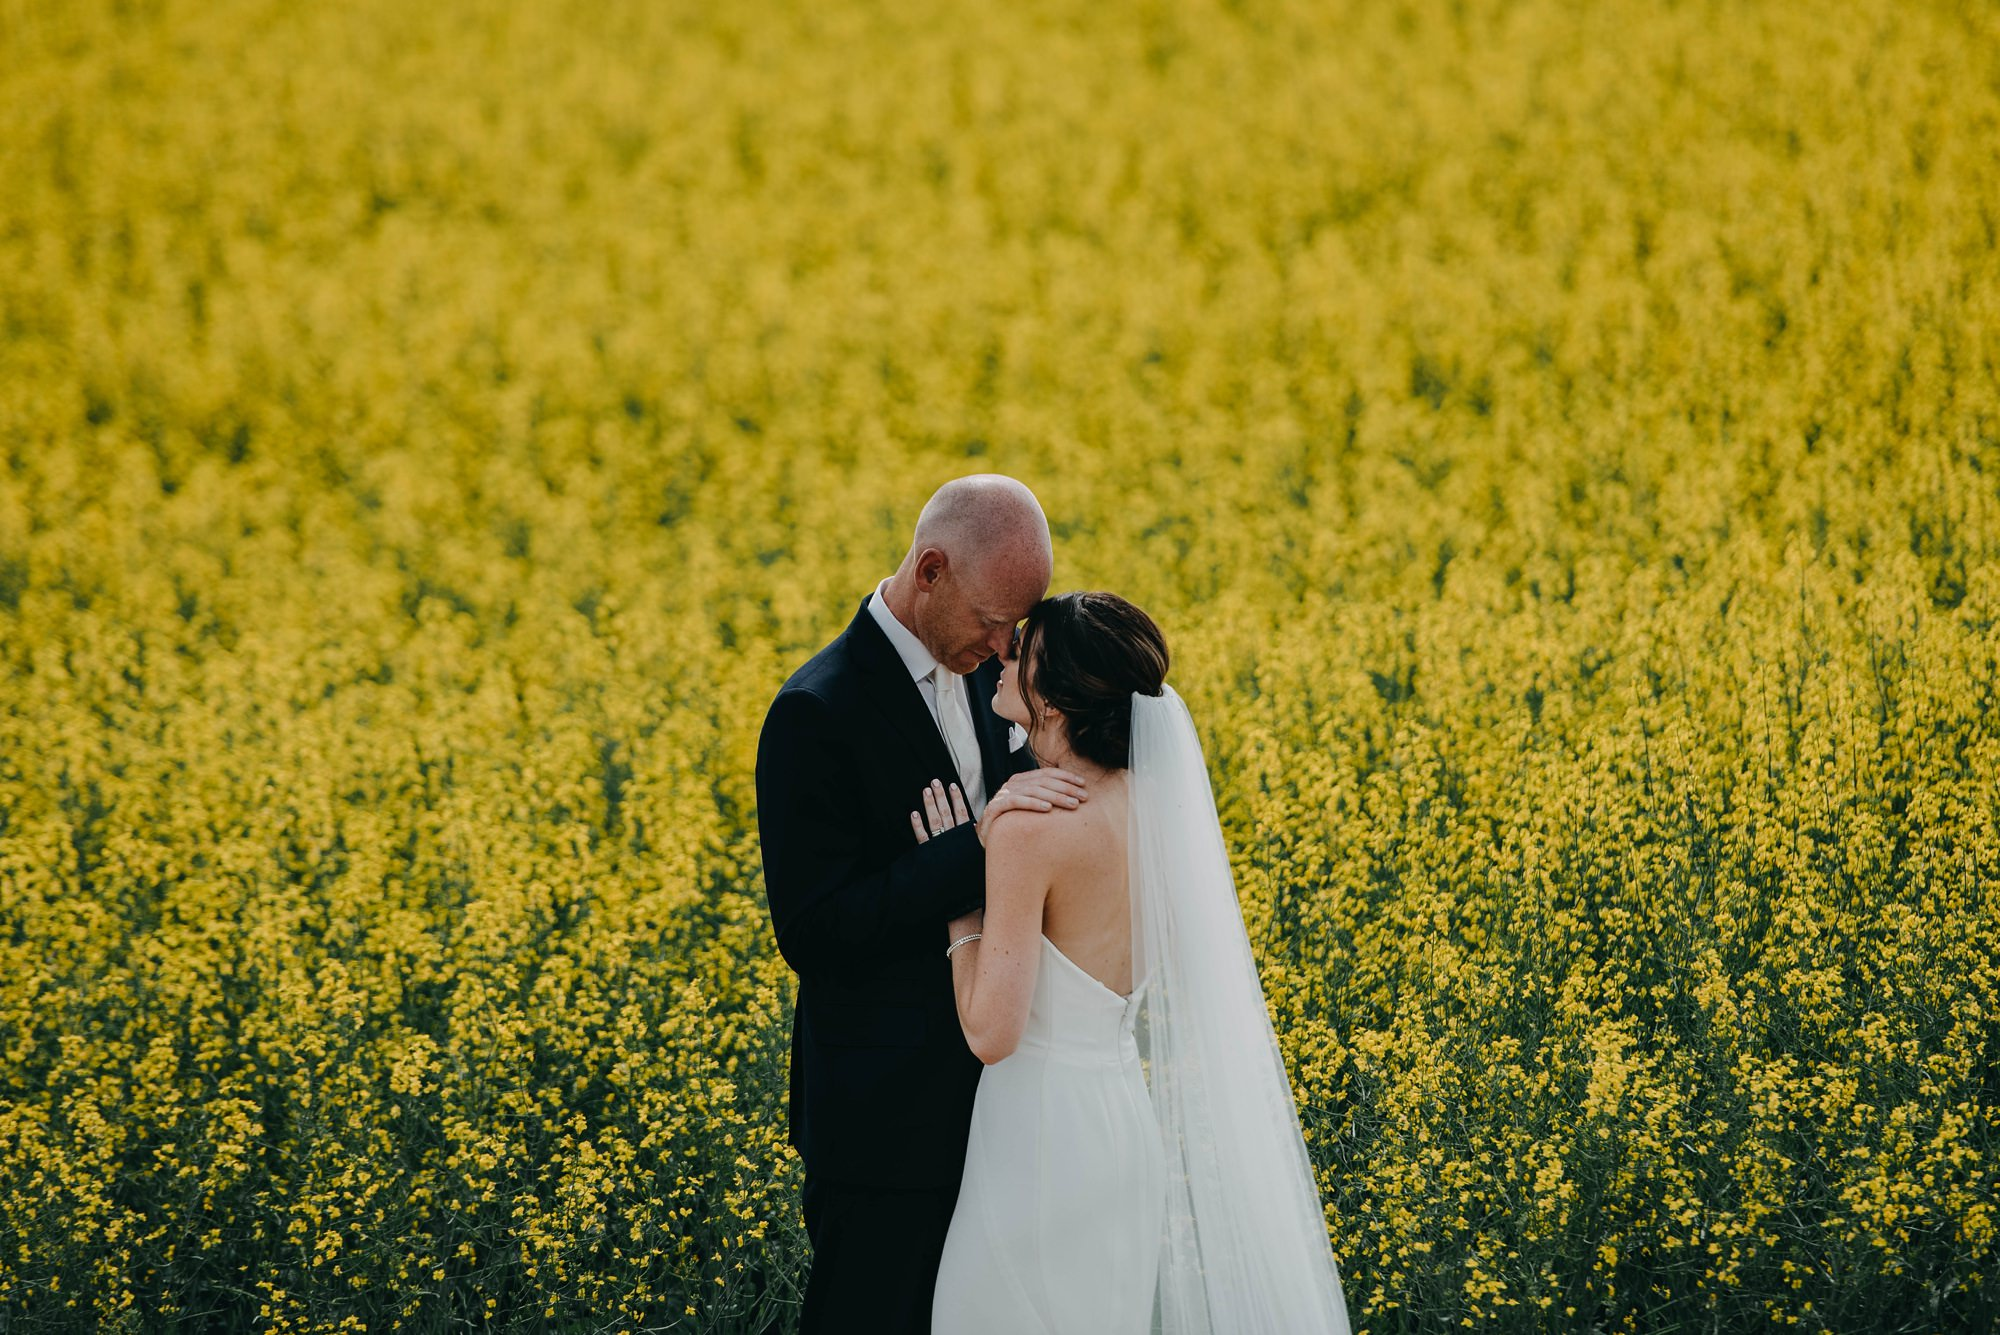 bride and groom embracing standing in front of a canola field during farm wedding